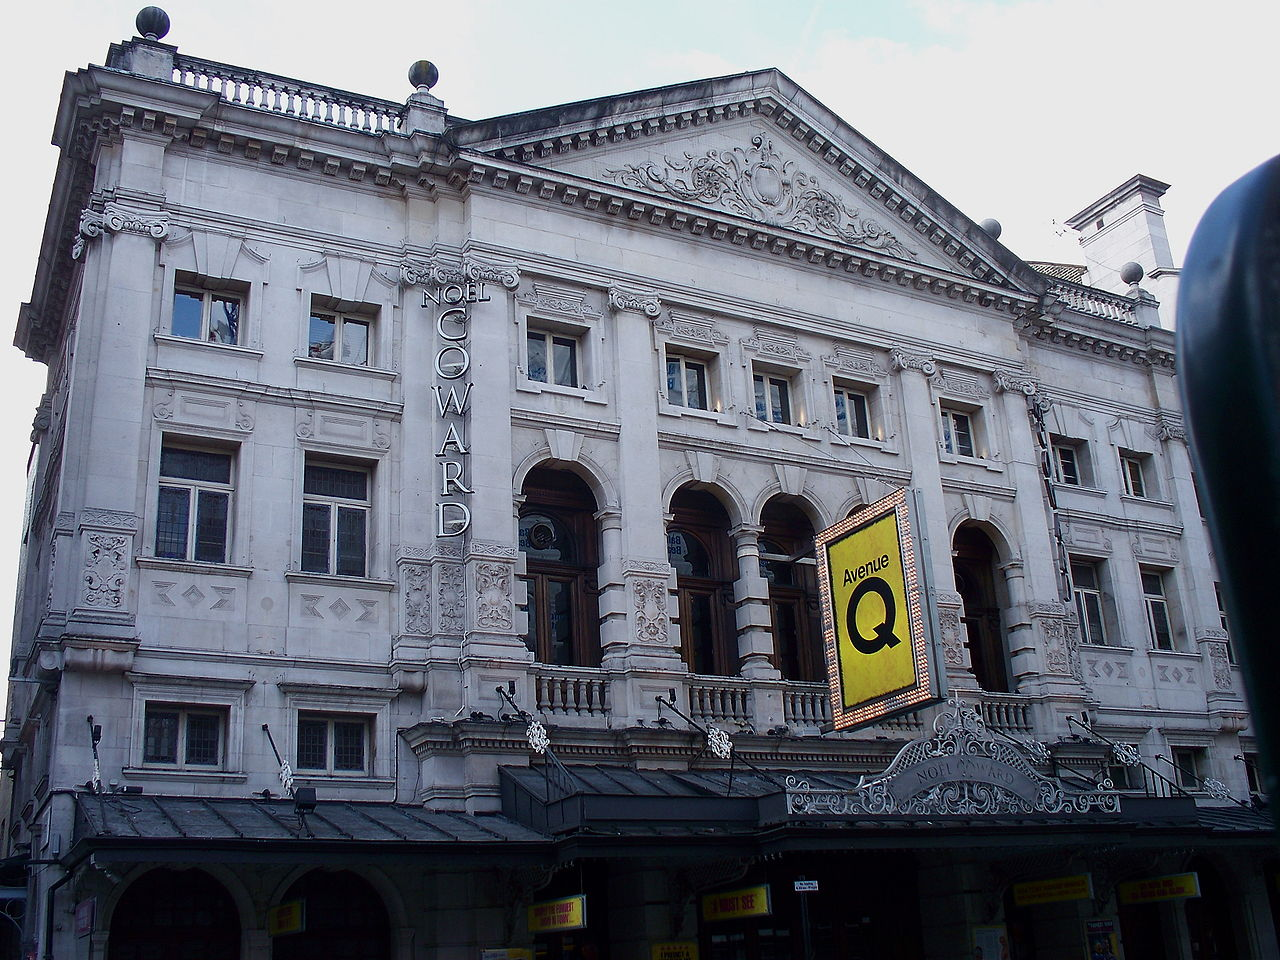 1903-Nol_Coward_Theatre_3.JPG